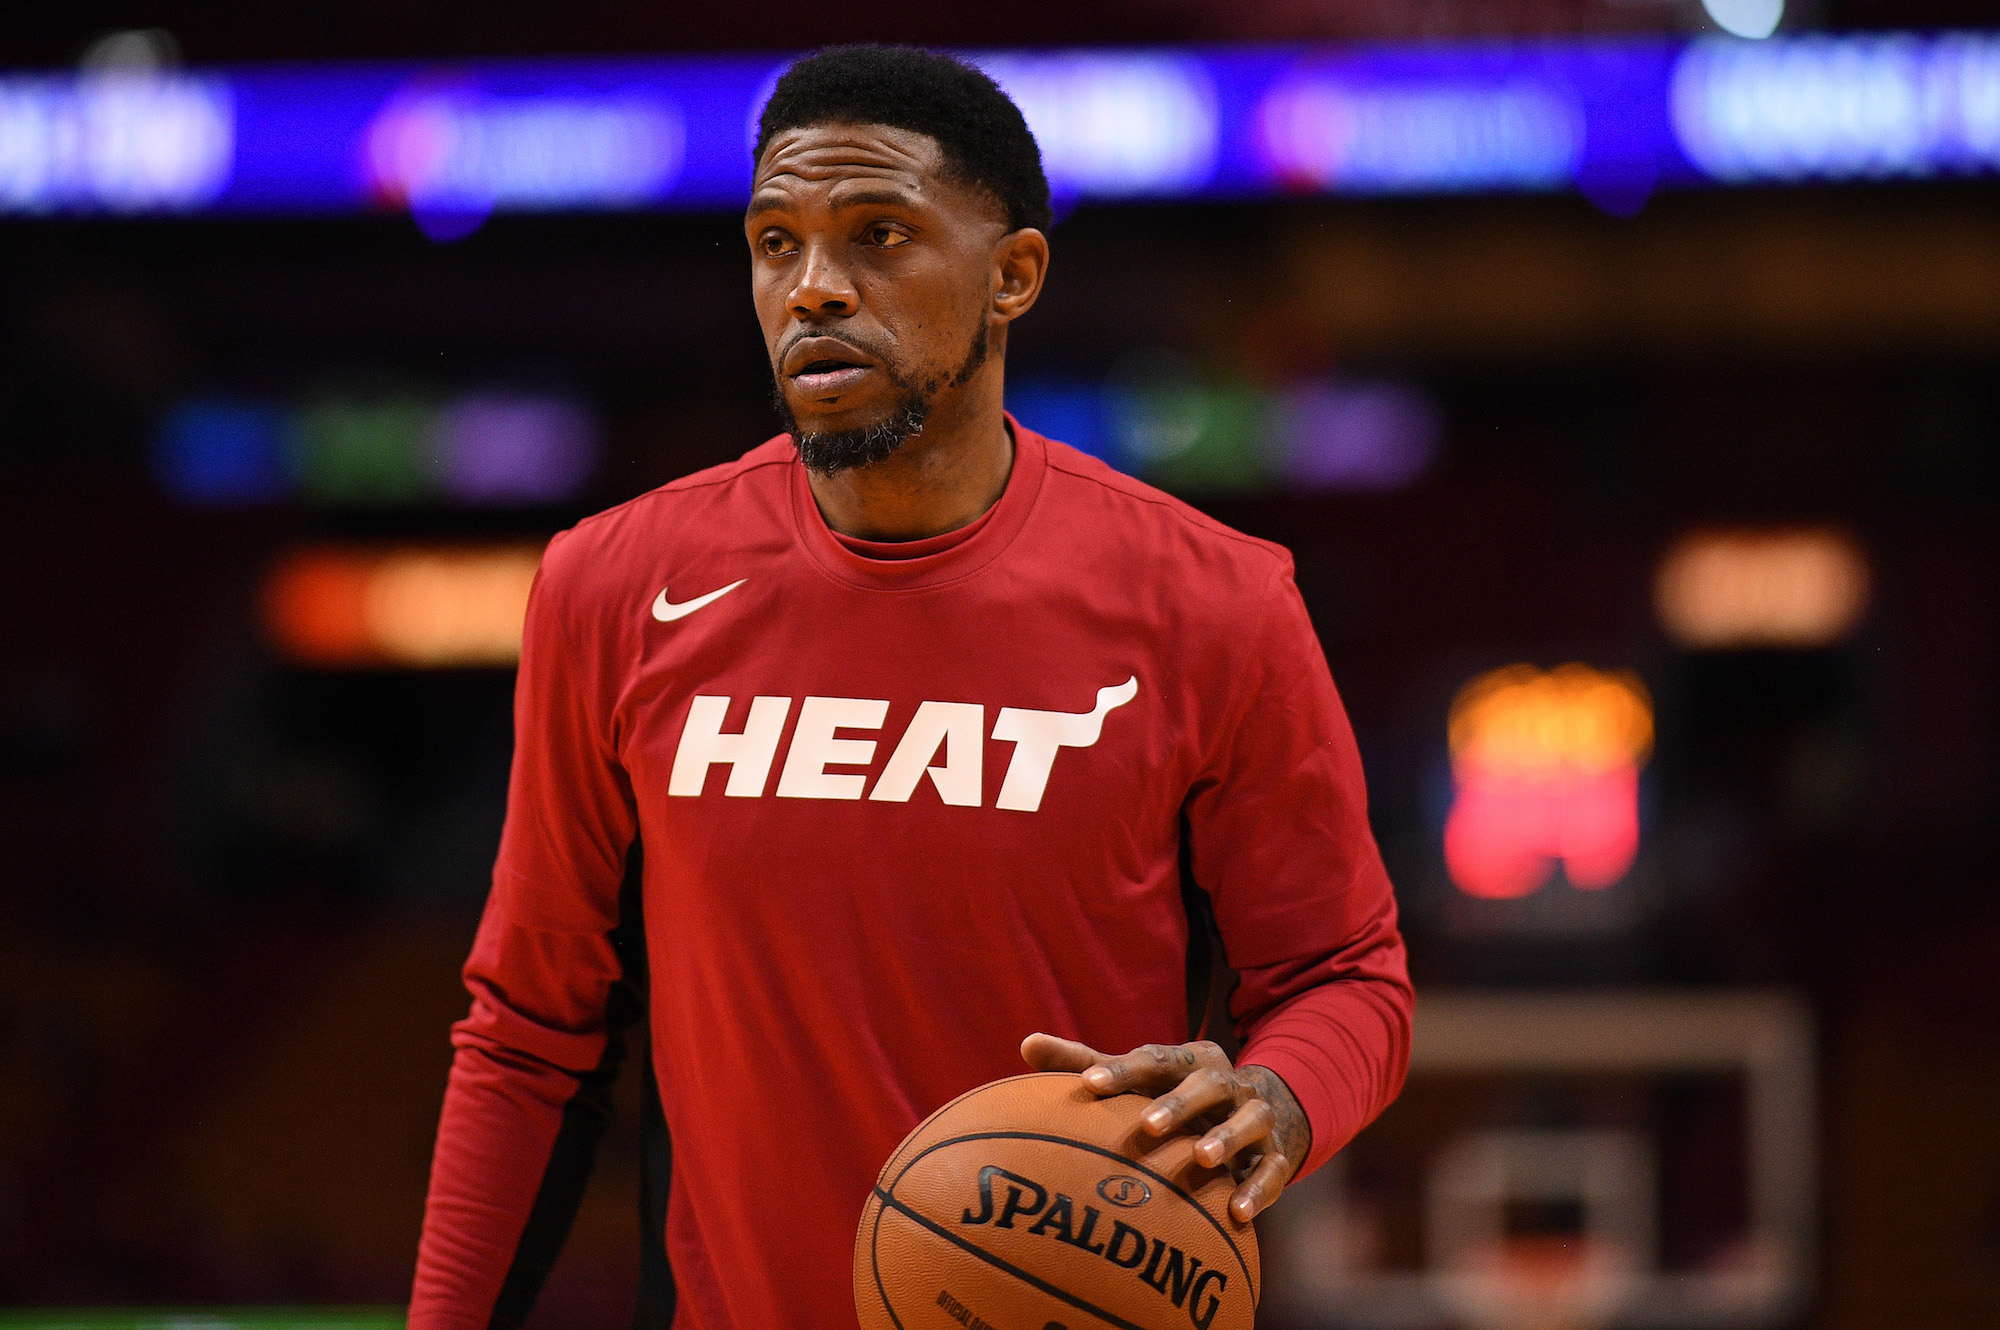 Udonis Haslem has used grit and hard work to earn more than $60 million in the NBA.